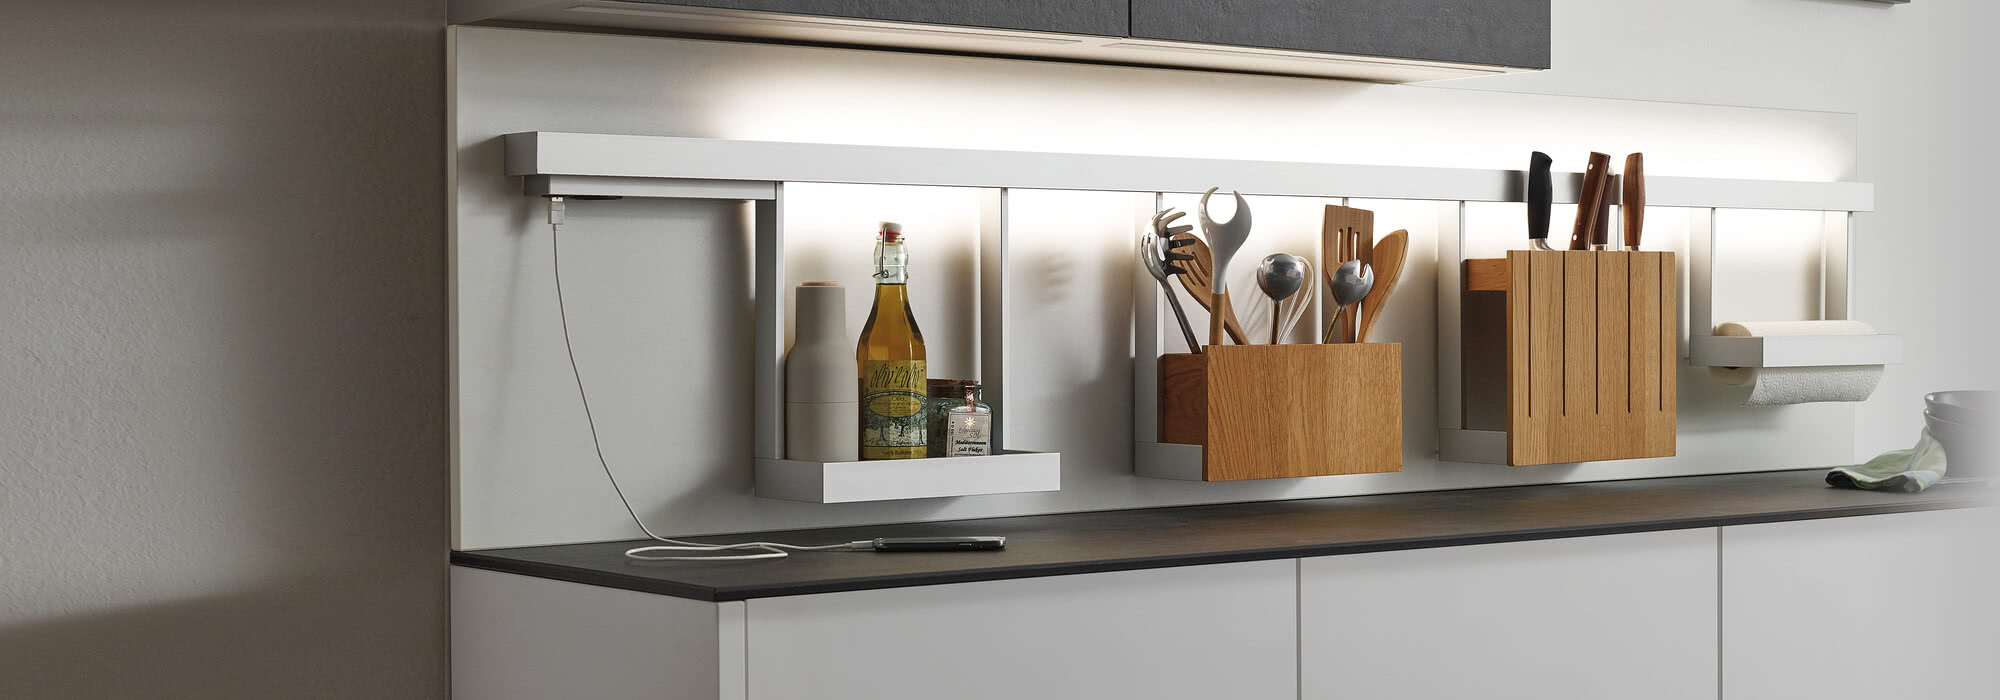 SPRINZ kitchen rail system